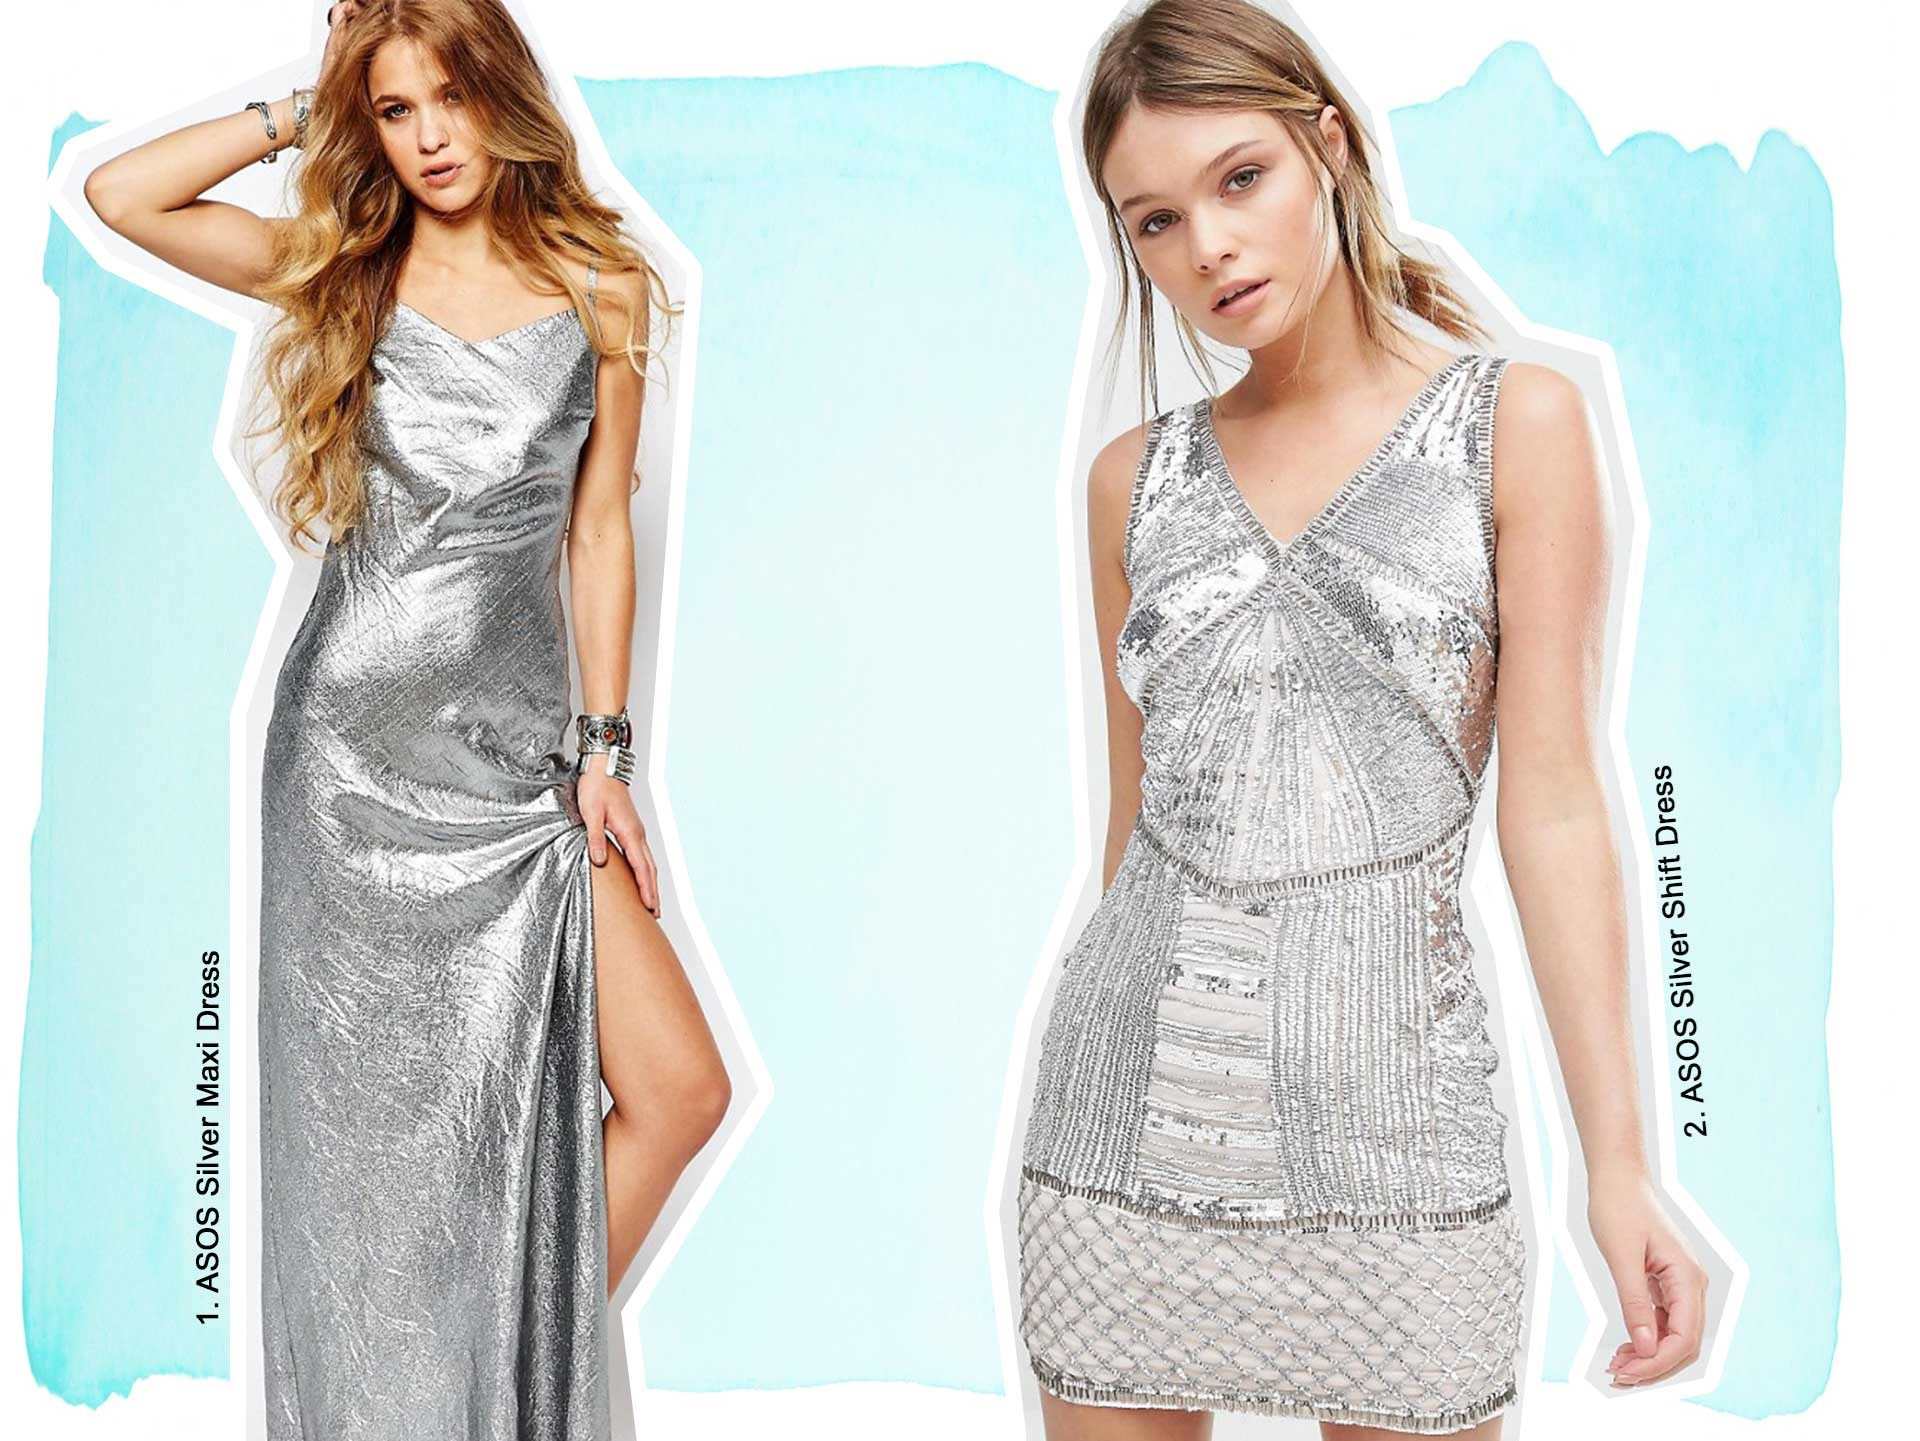 "**CINDERELLA** [**1.** ASOS Silver Maxi Dress](http://www.asos.com/au/reclaimed-vintage/reclaimed-vintage-maxi-cami-dress-in-festival-metallic/prod/pgeproduct.aspx?iid=6249743&clr=Silver&SearchQuery=silver+dress&pgesize=36&pge=0&totalstyles=91&gridsize=3&gridrow=9&gridcolumn=2|target=""_blank""